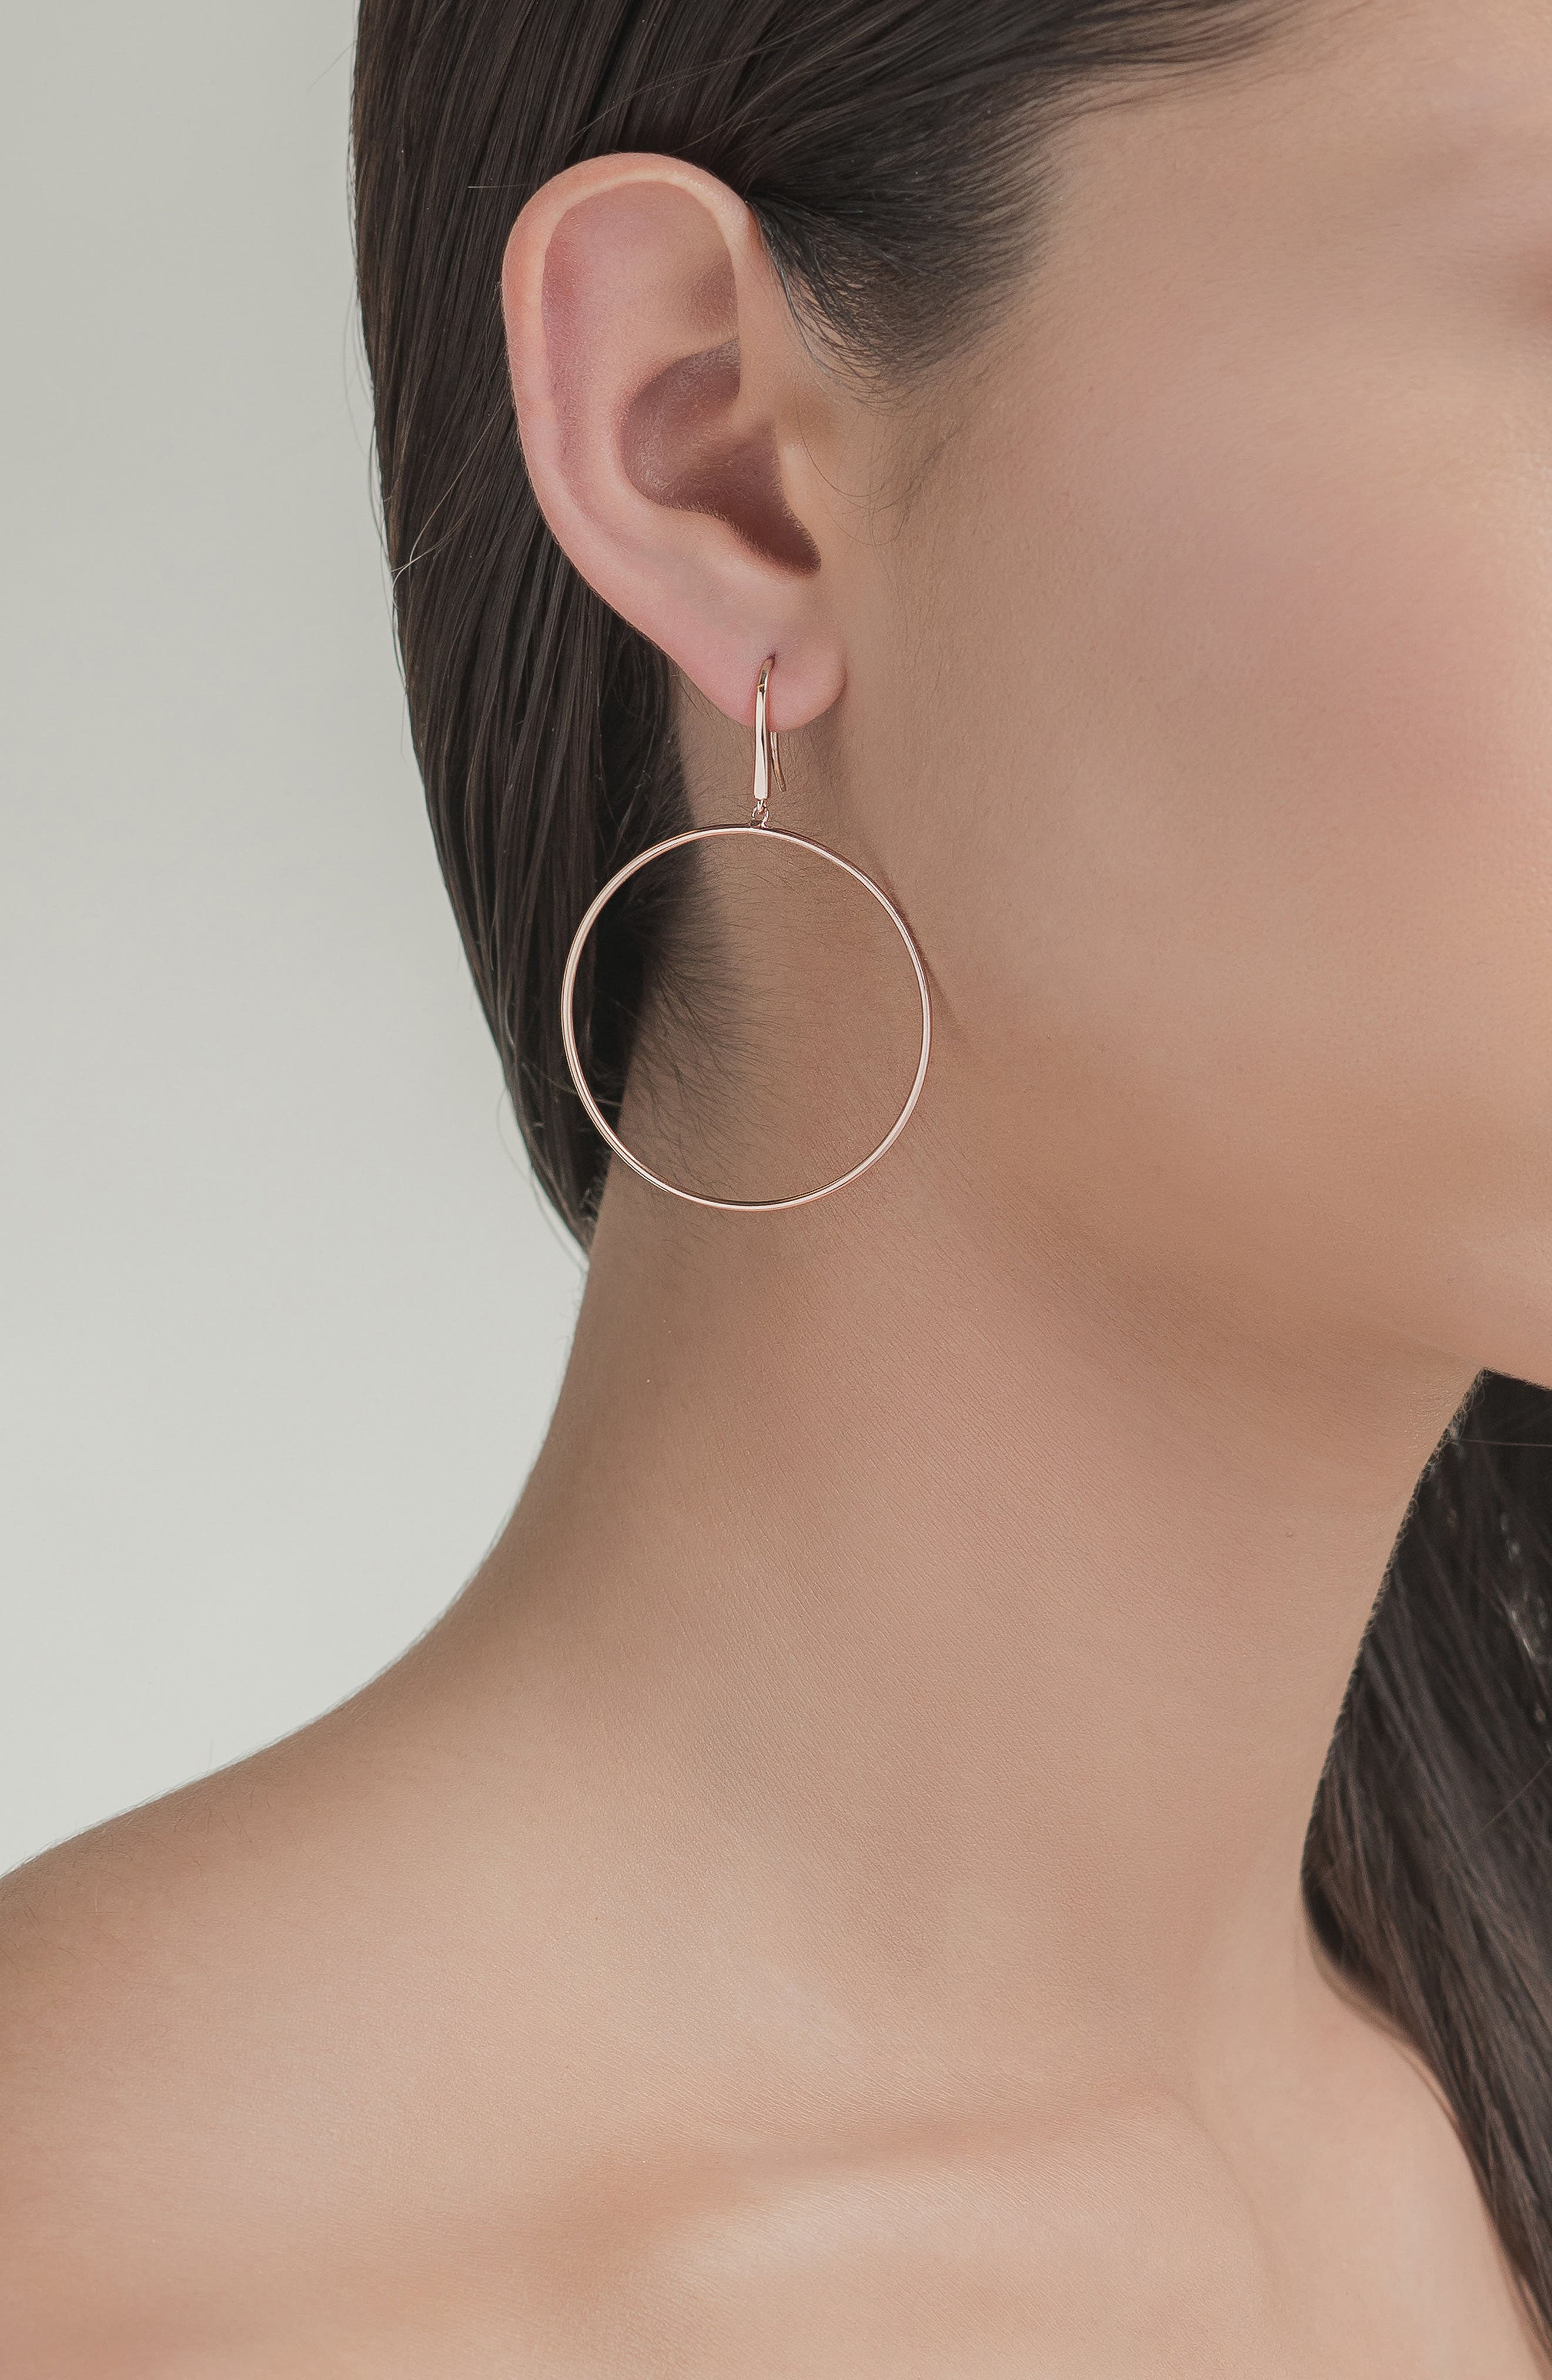 Wire Bangle Hoop Earrings,                             Alternate thumbnail 2, color,                             YELLOW GOLD